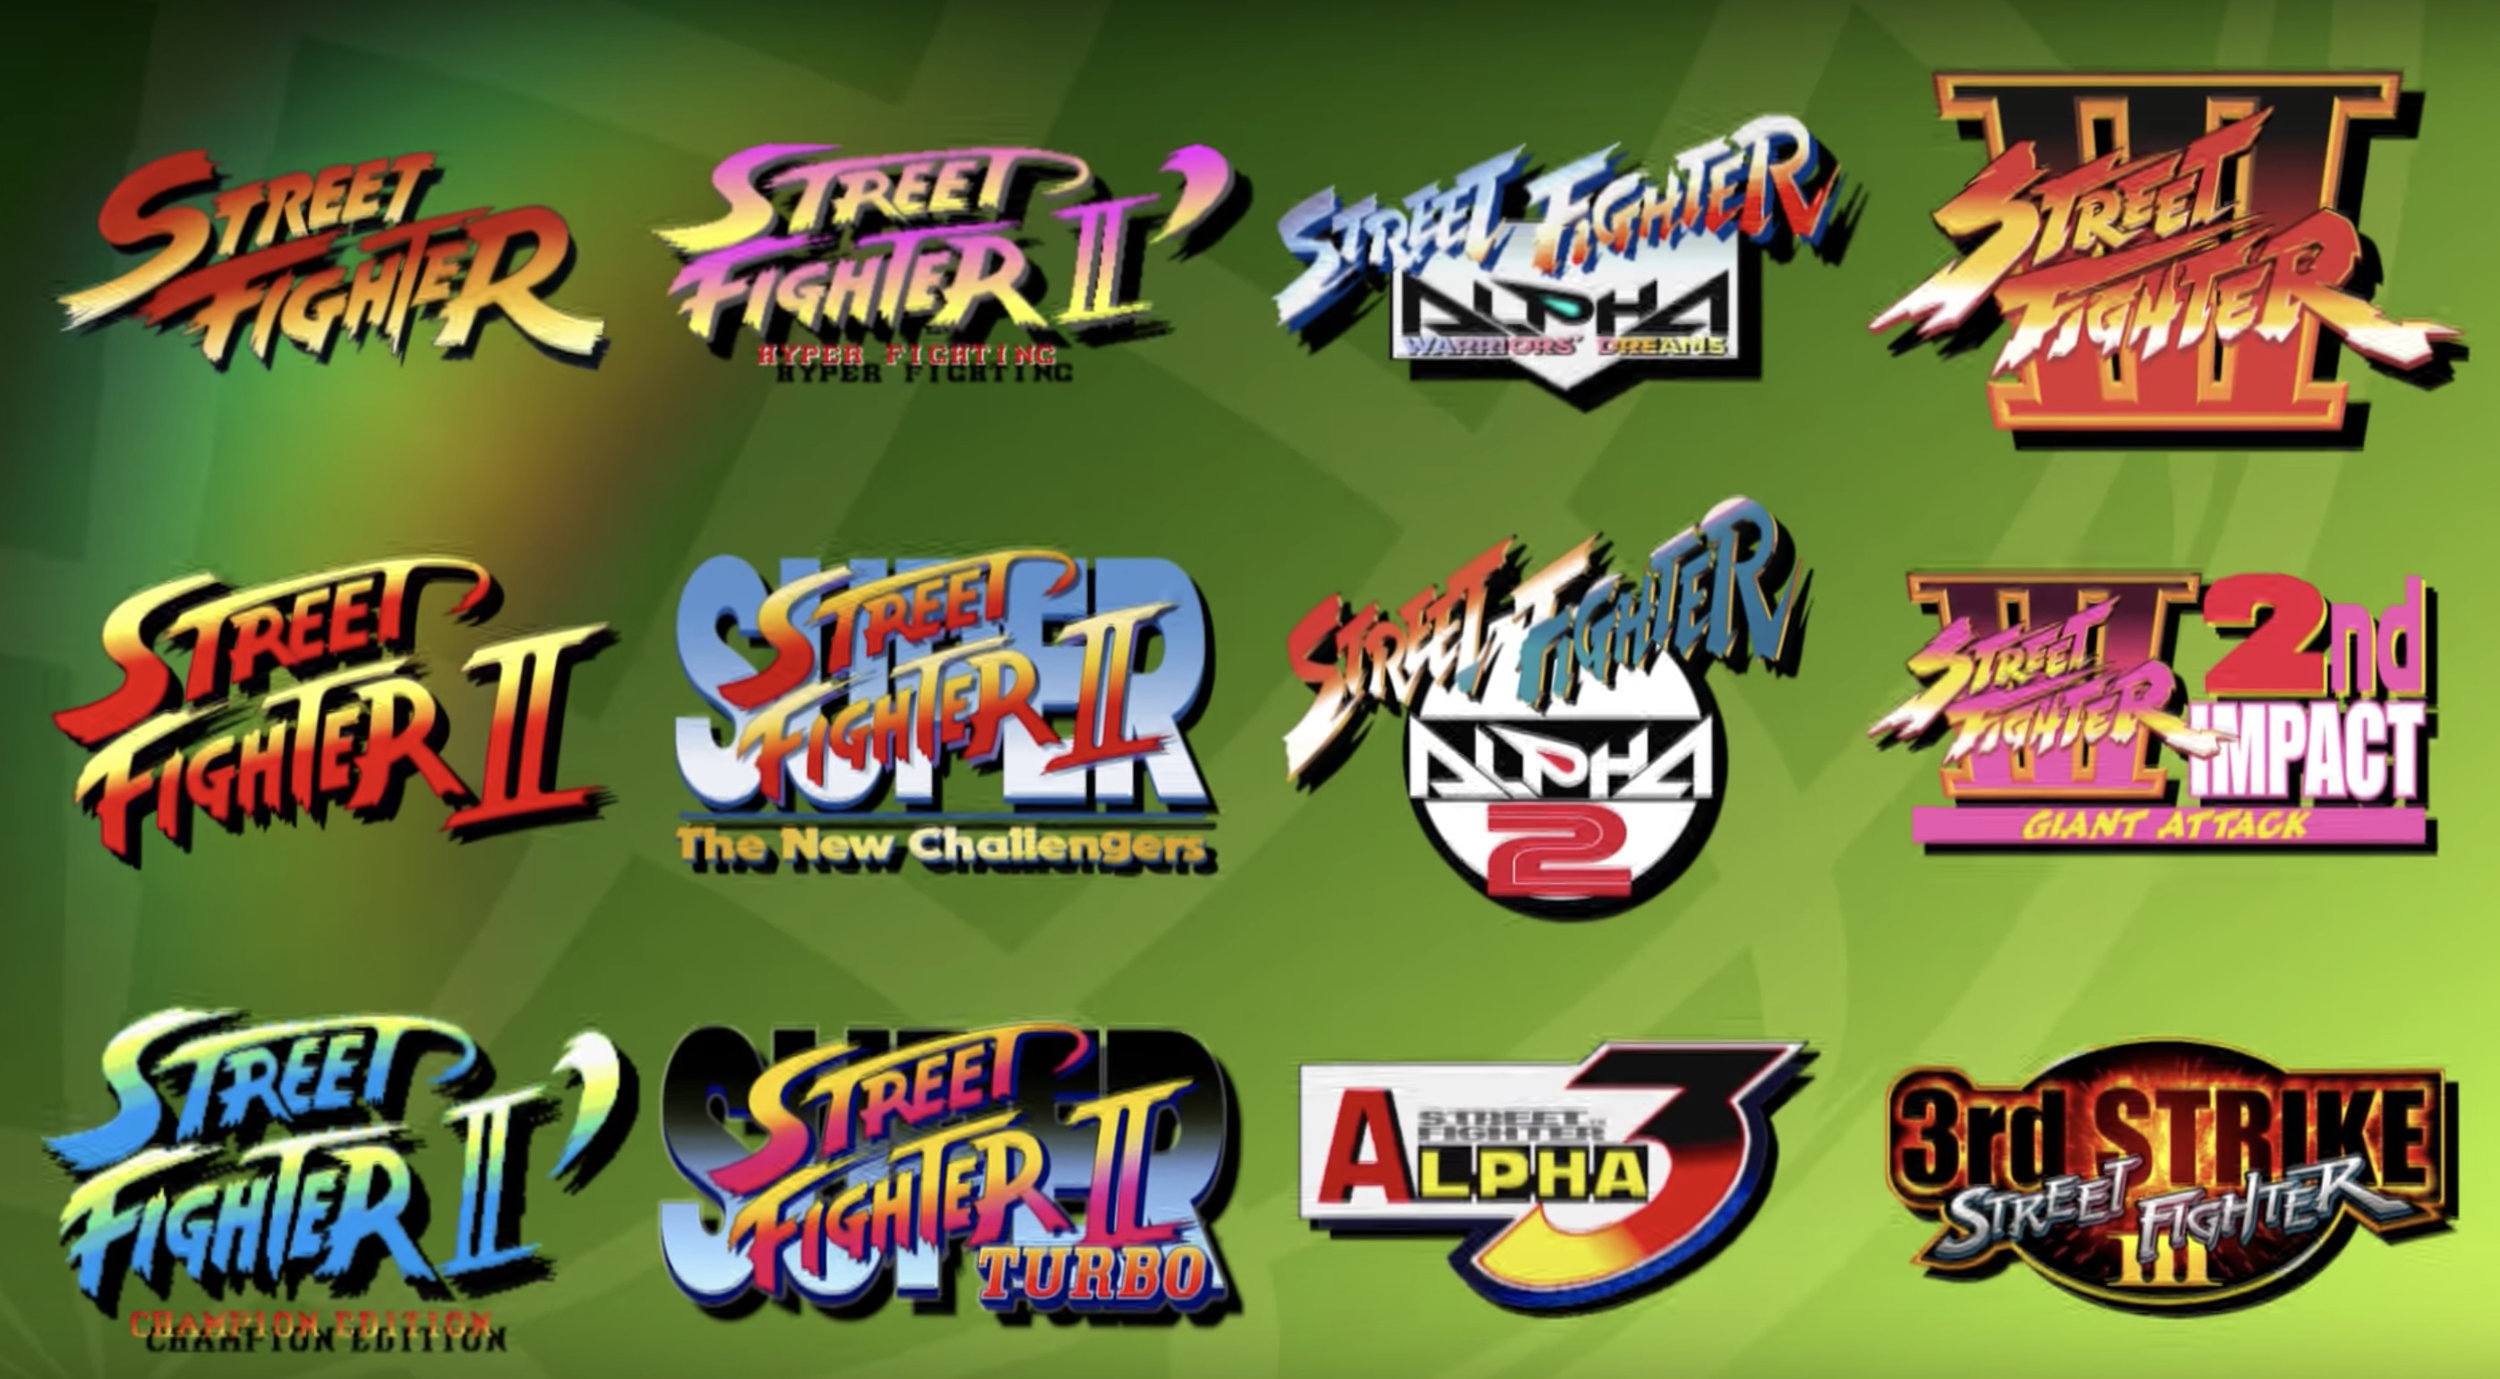 Street Fighter Japanese Fans Upset About 30th Anniversary - http://www.nintendolife.com/news/2017/12/some_japanese_gamers_arent_happy_about_street_fighter_30th_anniversary_collection